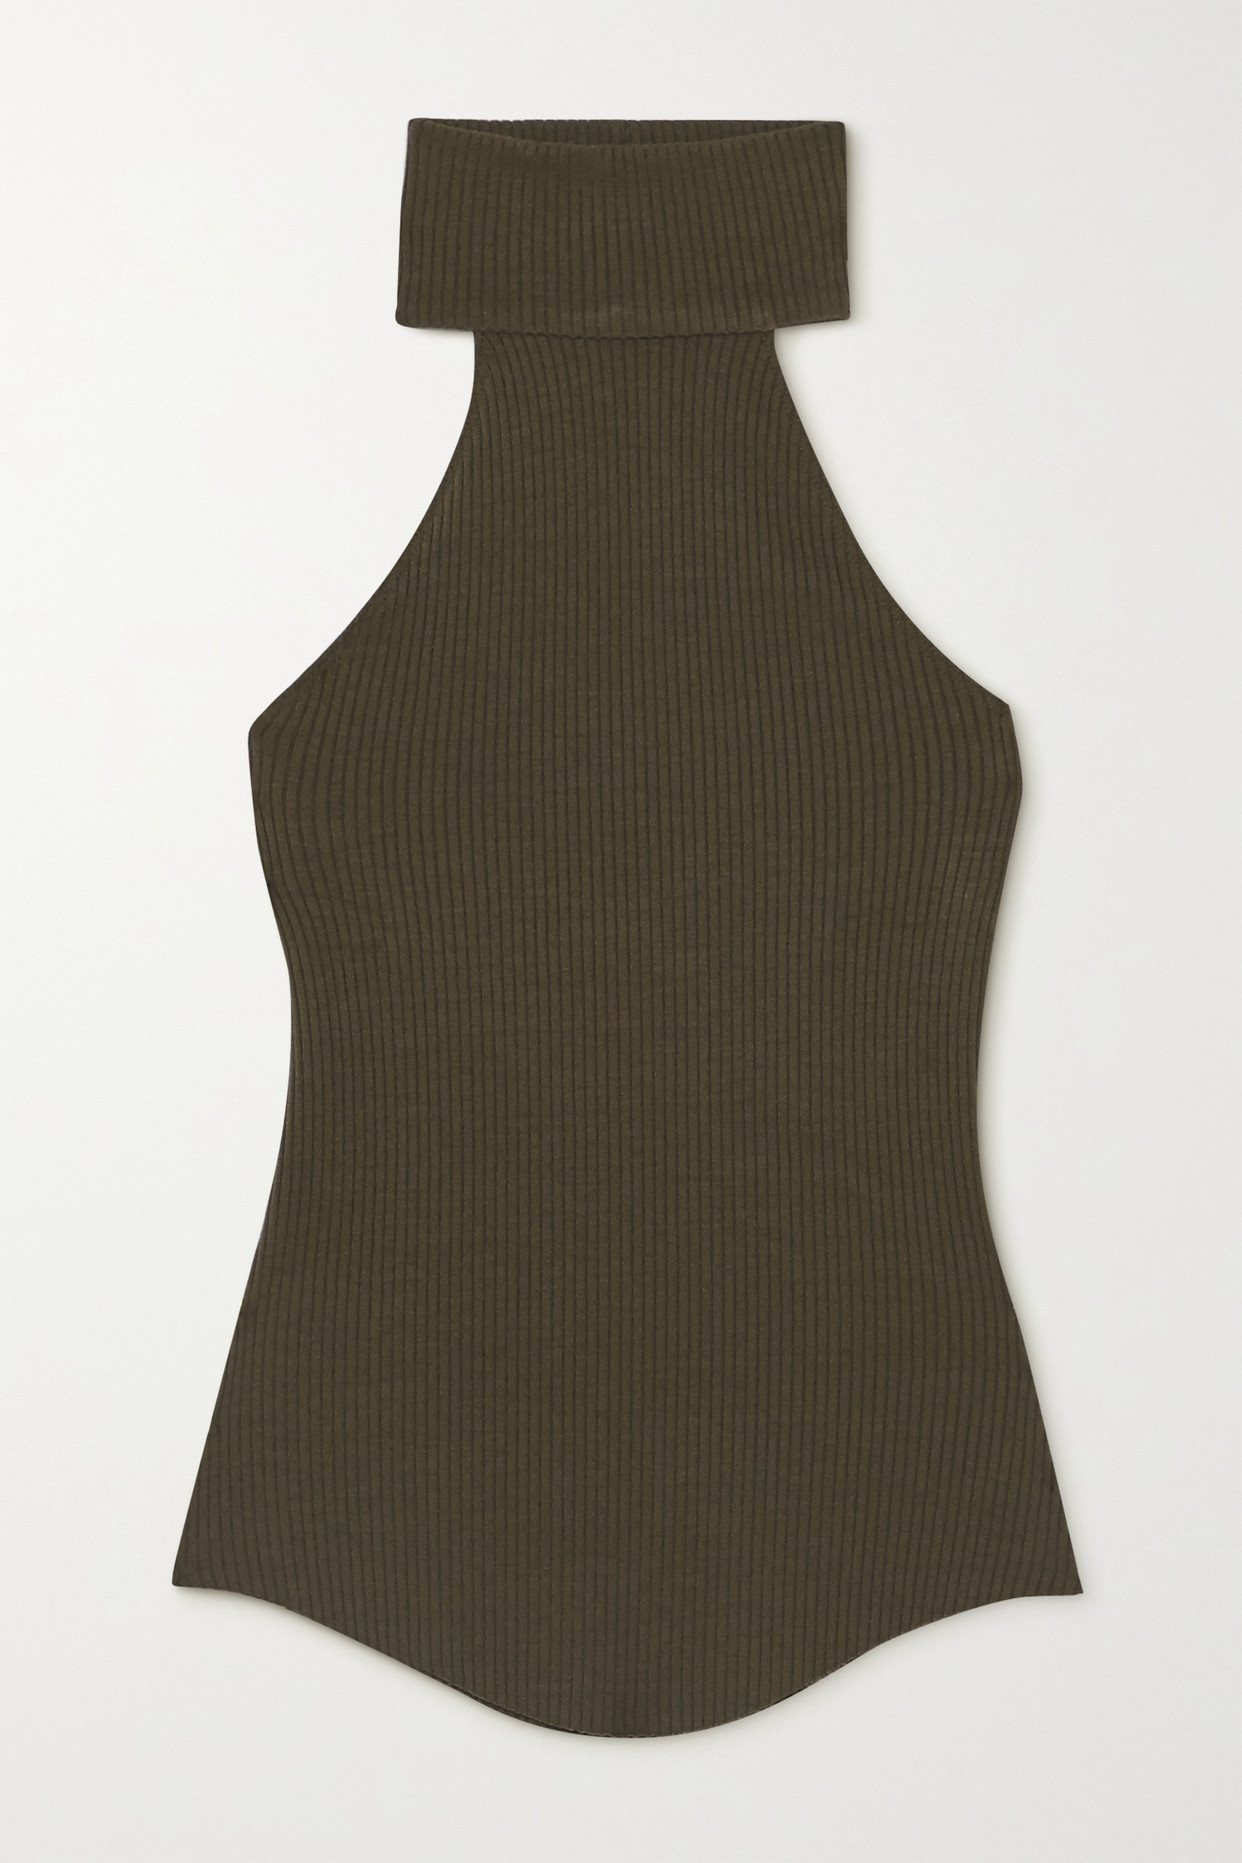 THE RANGE - Alloy Ribbed Stretch-knit Turtleneck Top - Green - x small